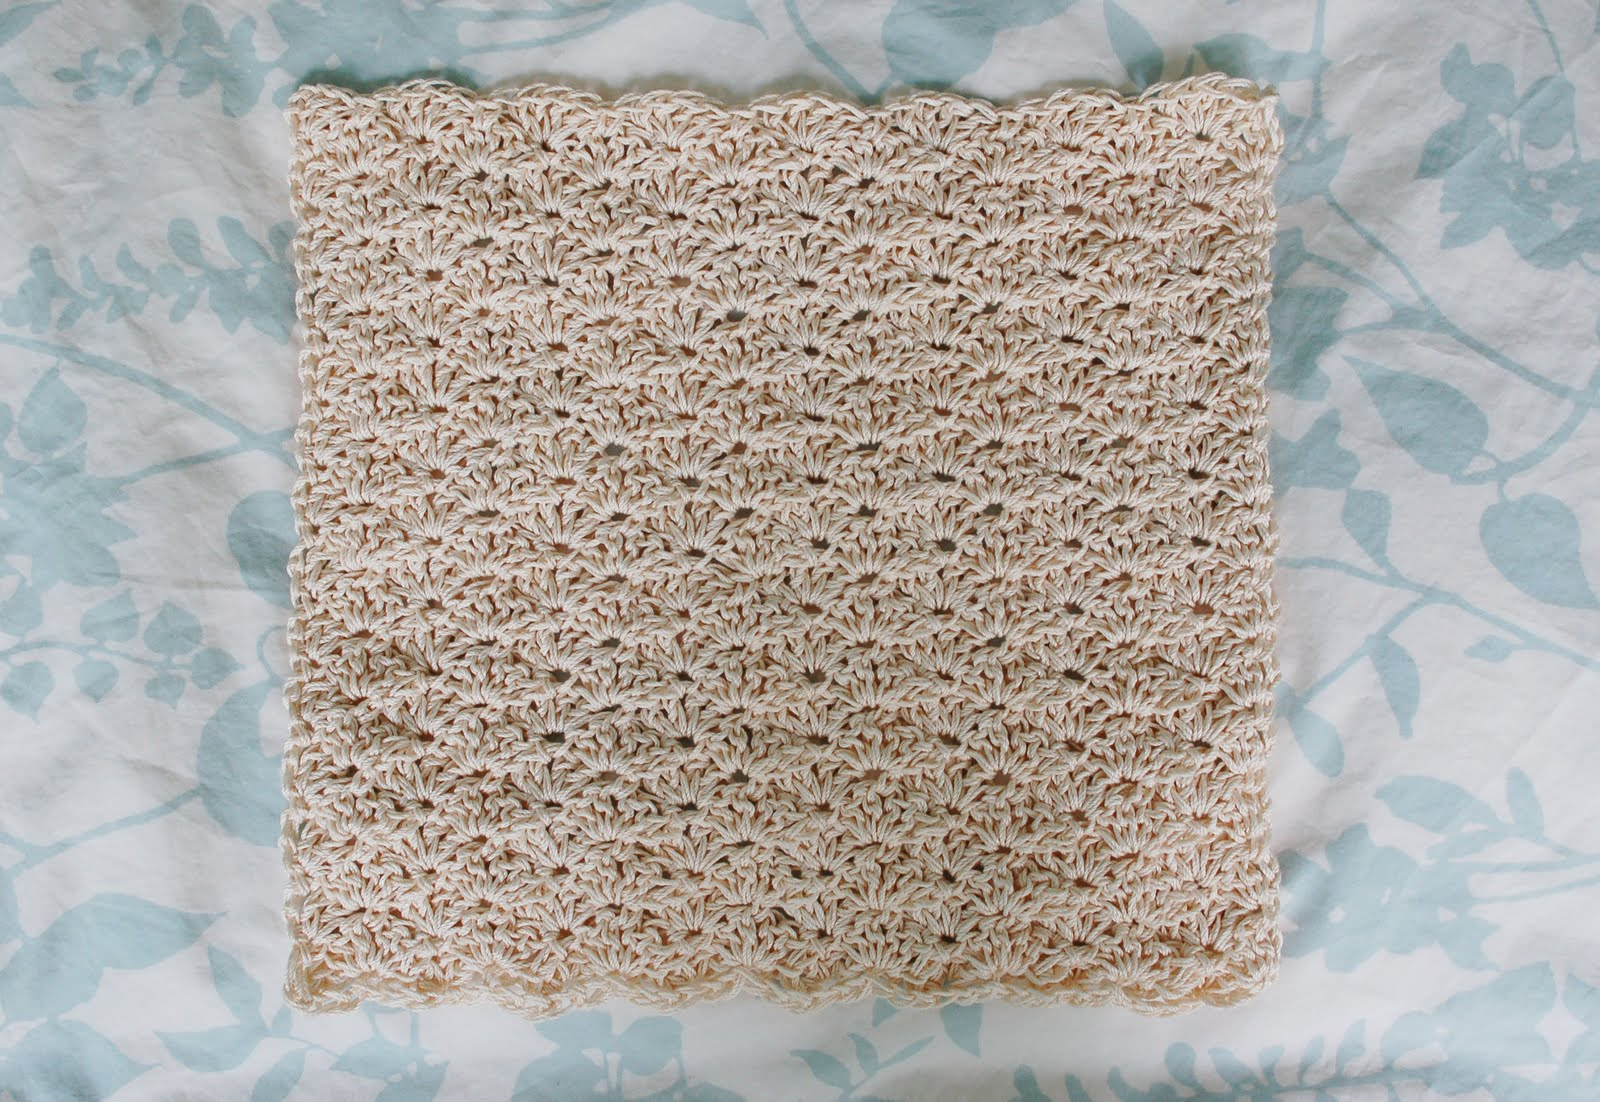 Free Crochet Pattern With Thread : COTTON CROCHET FREE PATTERN THREAD Crochet Patterns